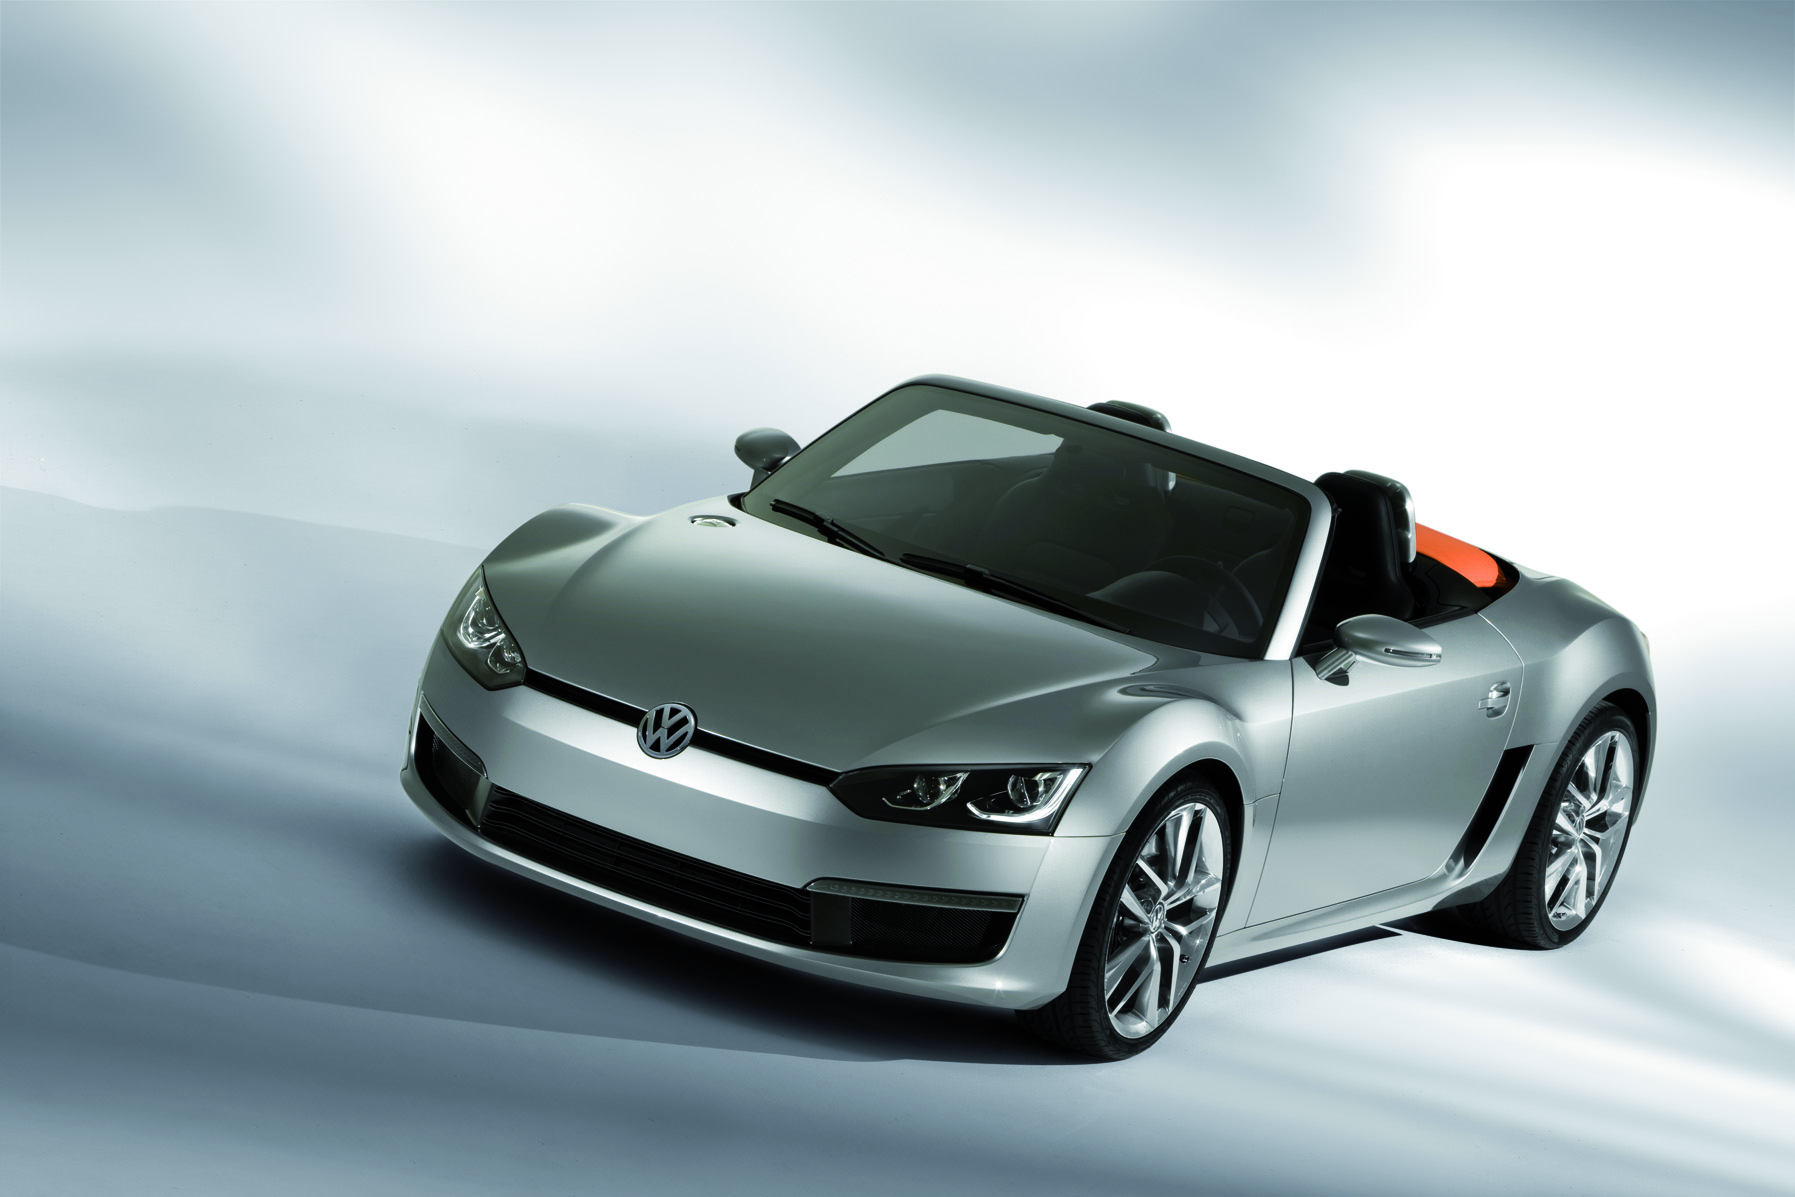 vw exec confirms new phaeton, rules out bluesport-like sports car